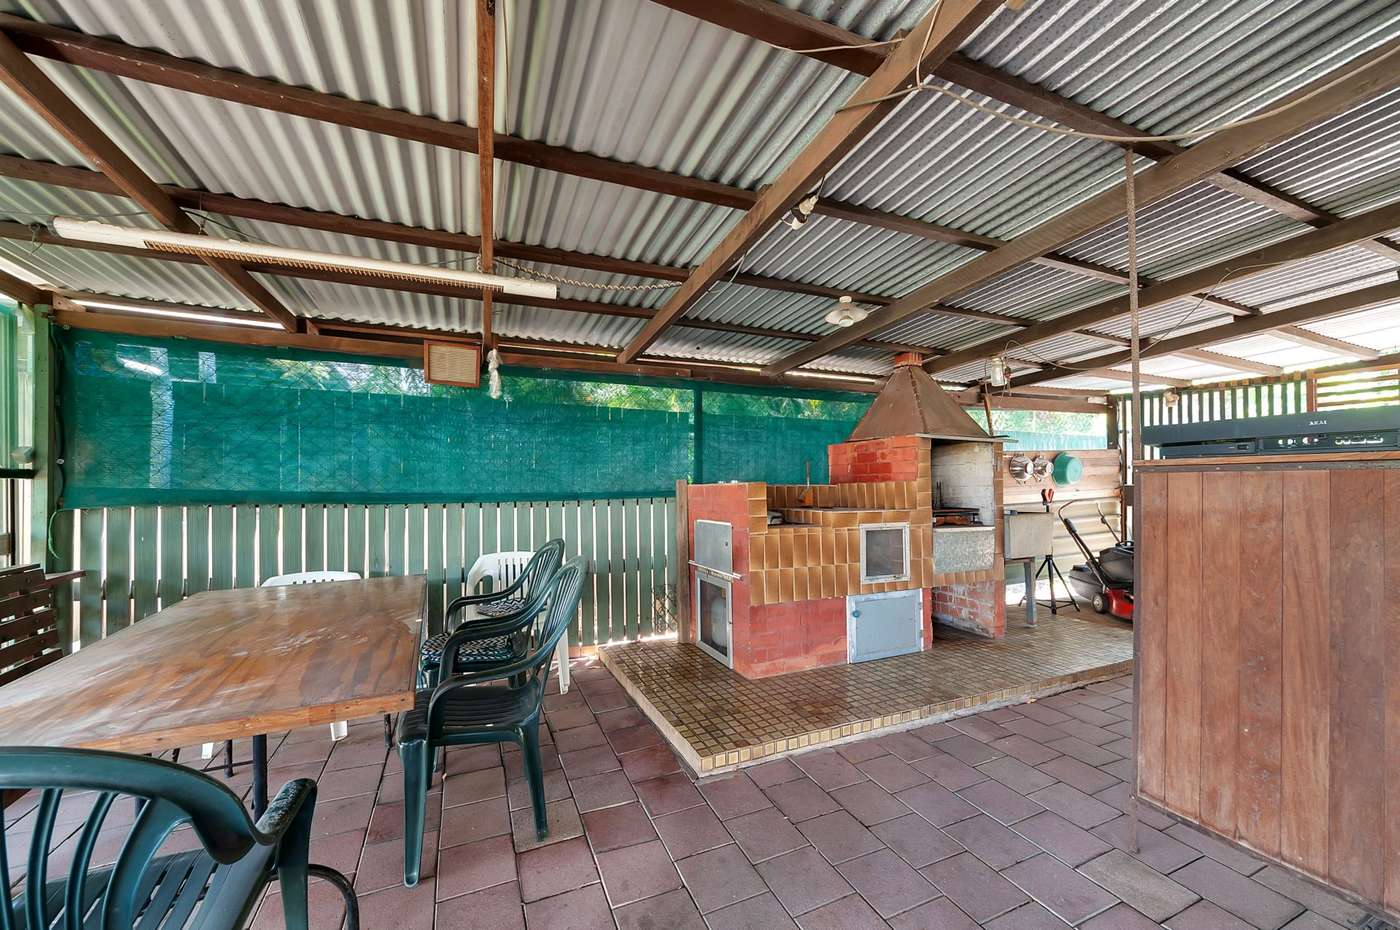 Main view of Homely house listing, 128 Wilkinson Street, Manunda, QLD 4870